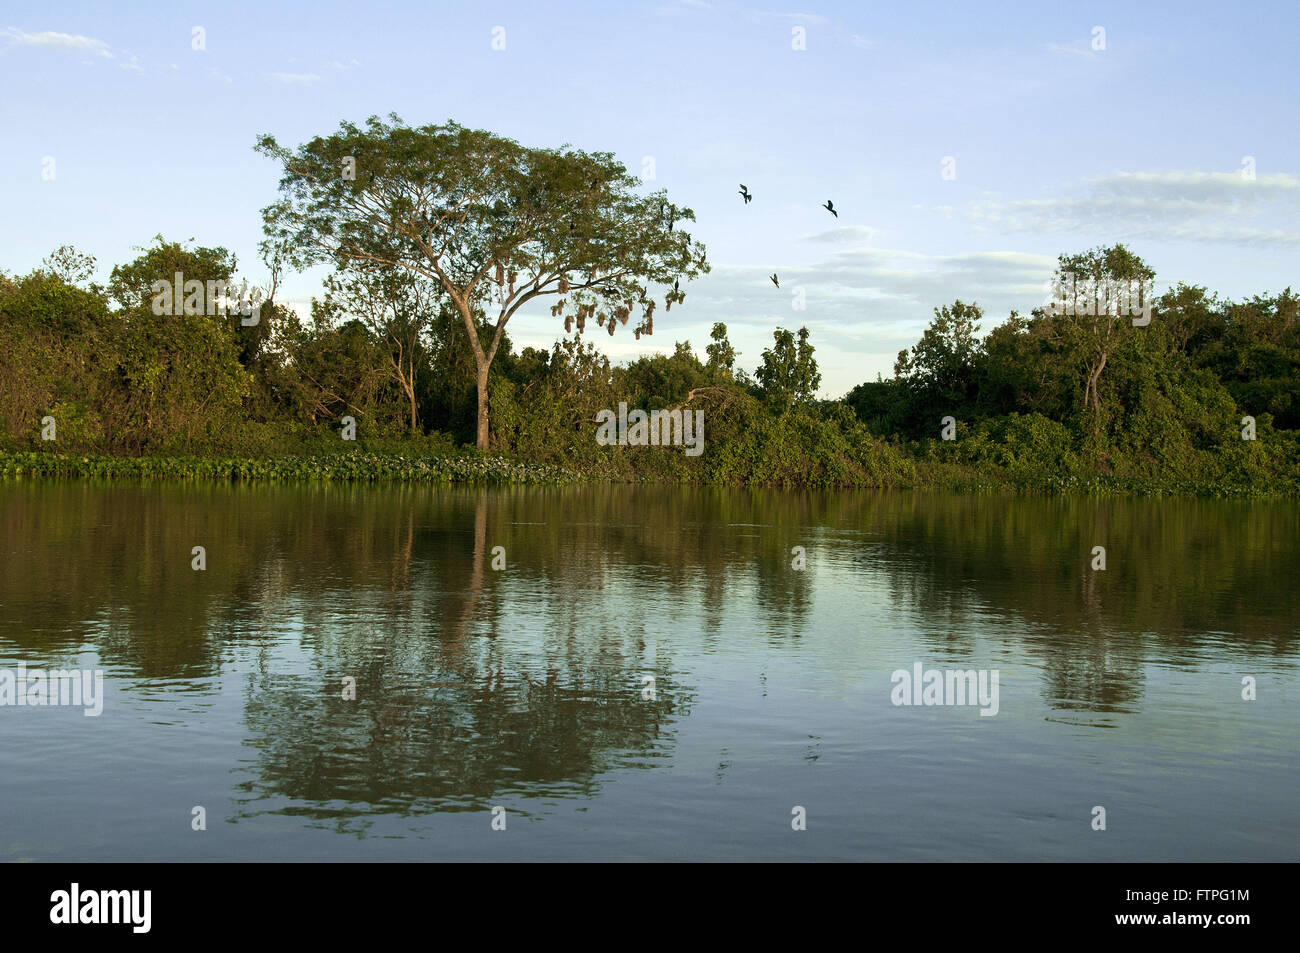 Reflection of riparian vegetation in the Rio Paraguay - Stock Image